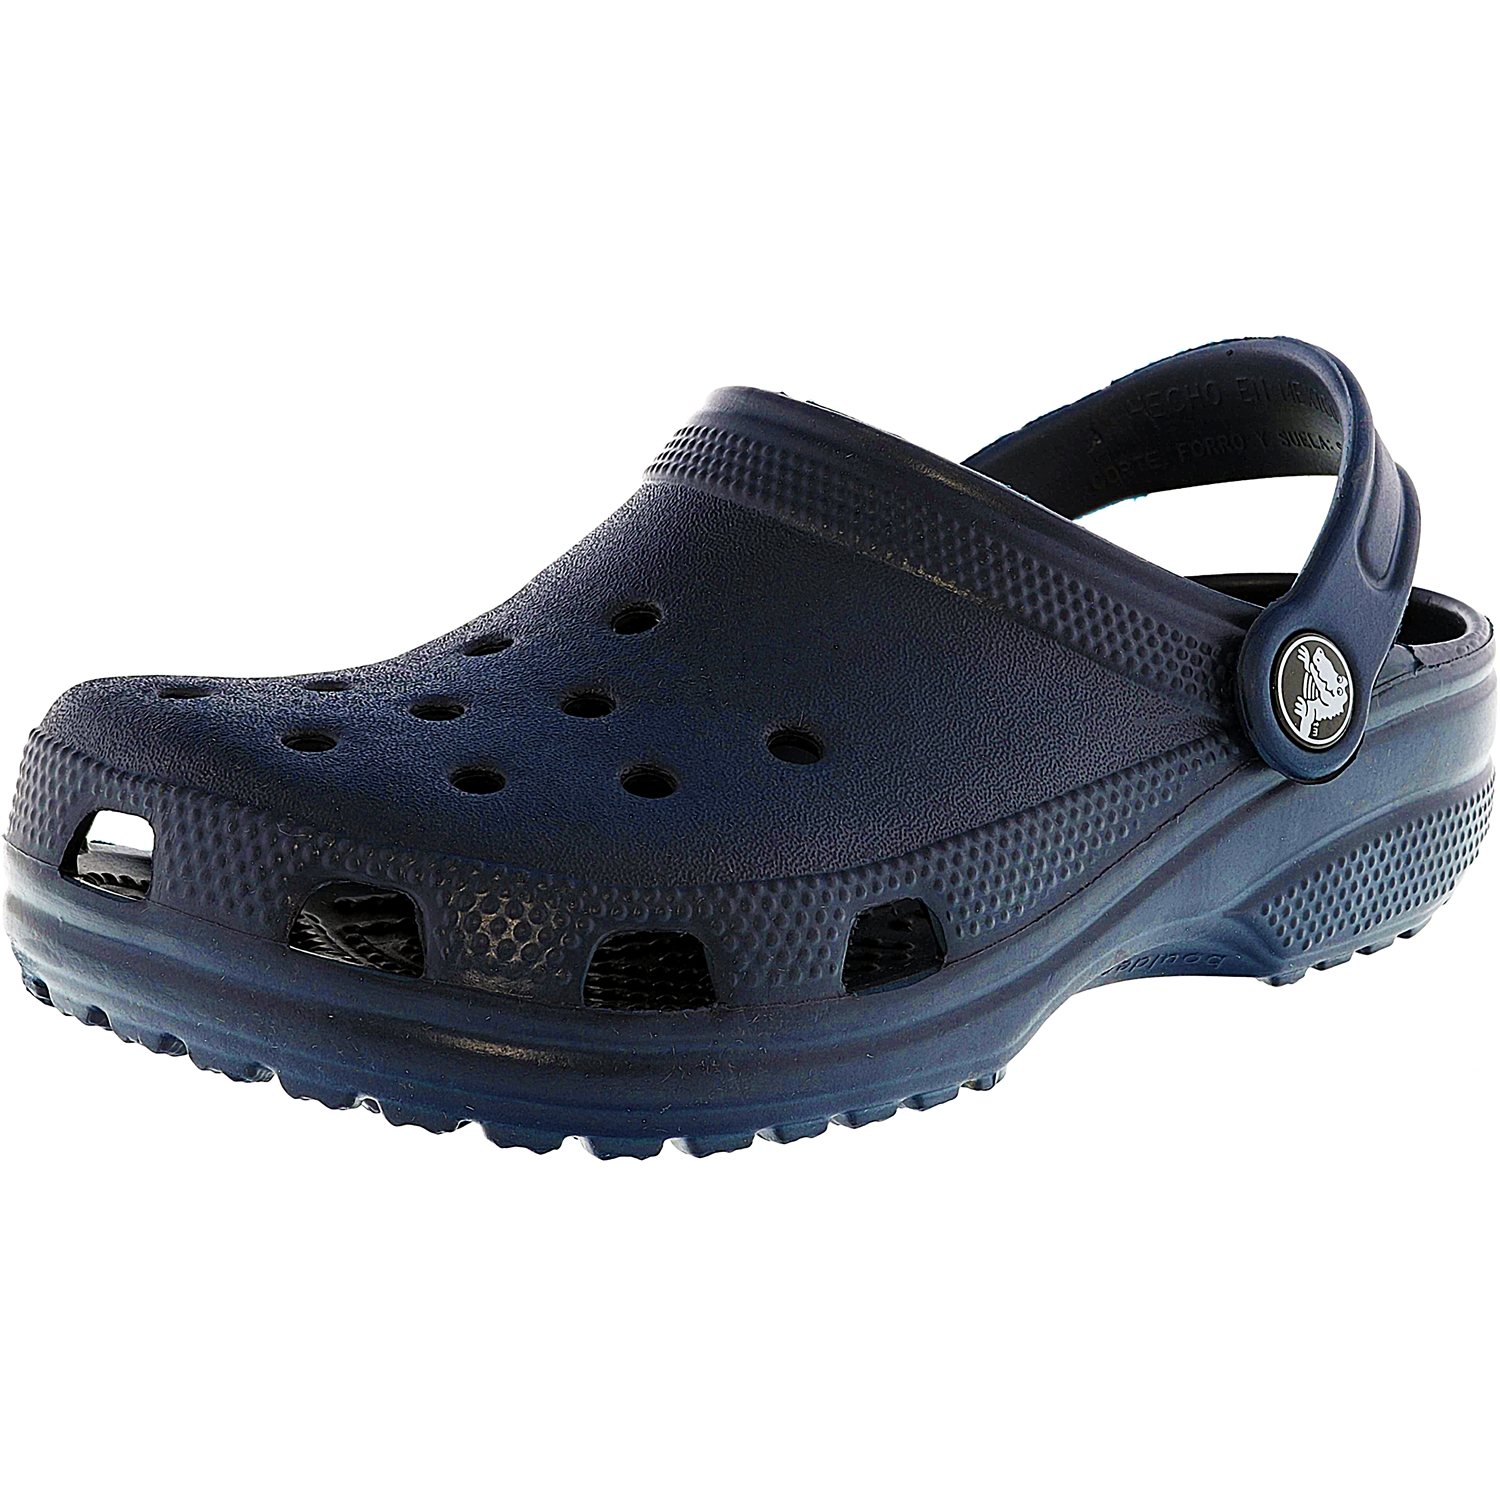 Crocs Classic Clog Navy Flat Shoe 3M by Crocs